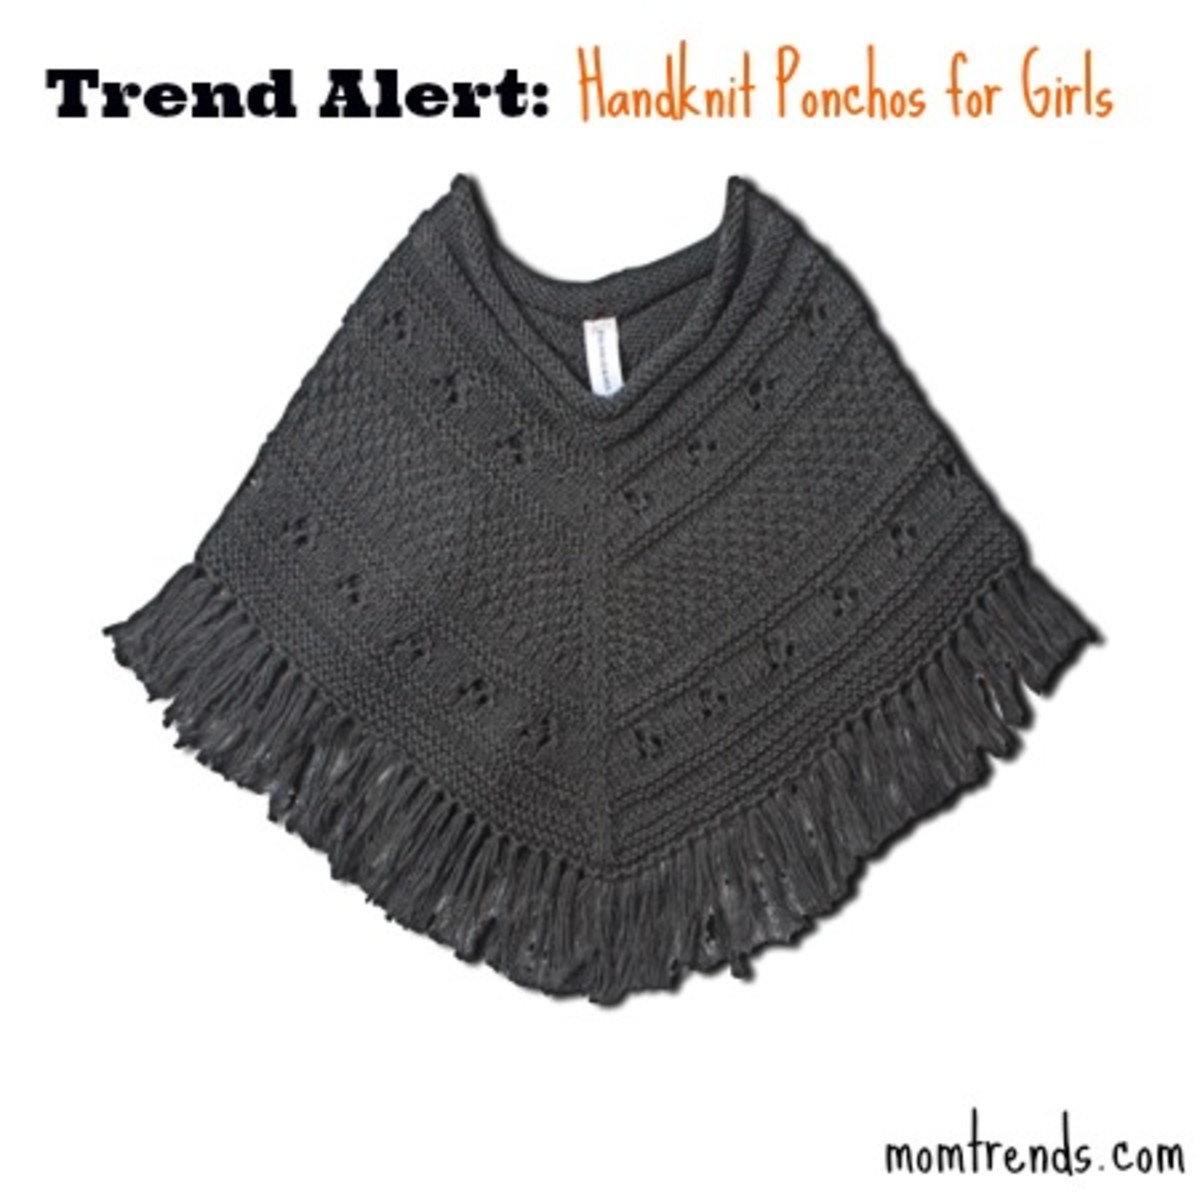 hand knit poncho, clothing trends for kids, playtime NYC